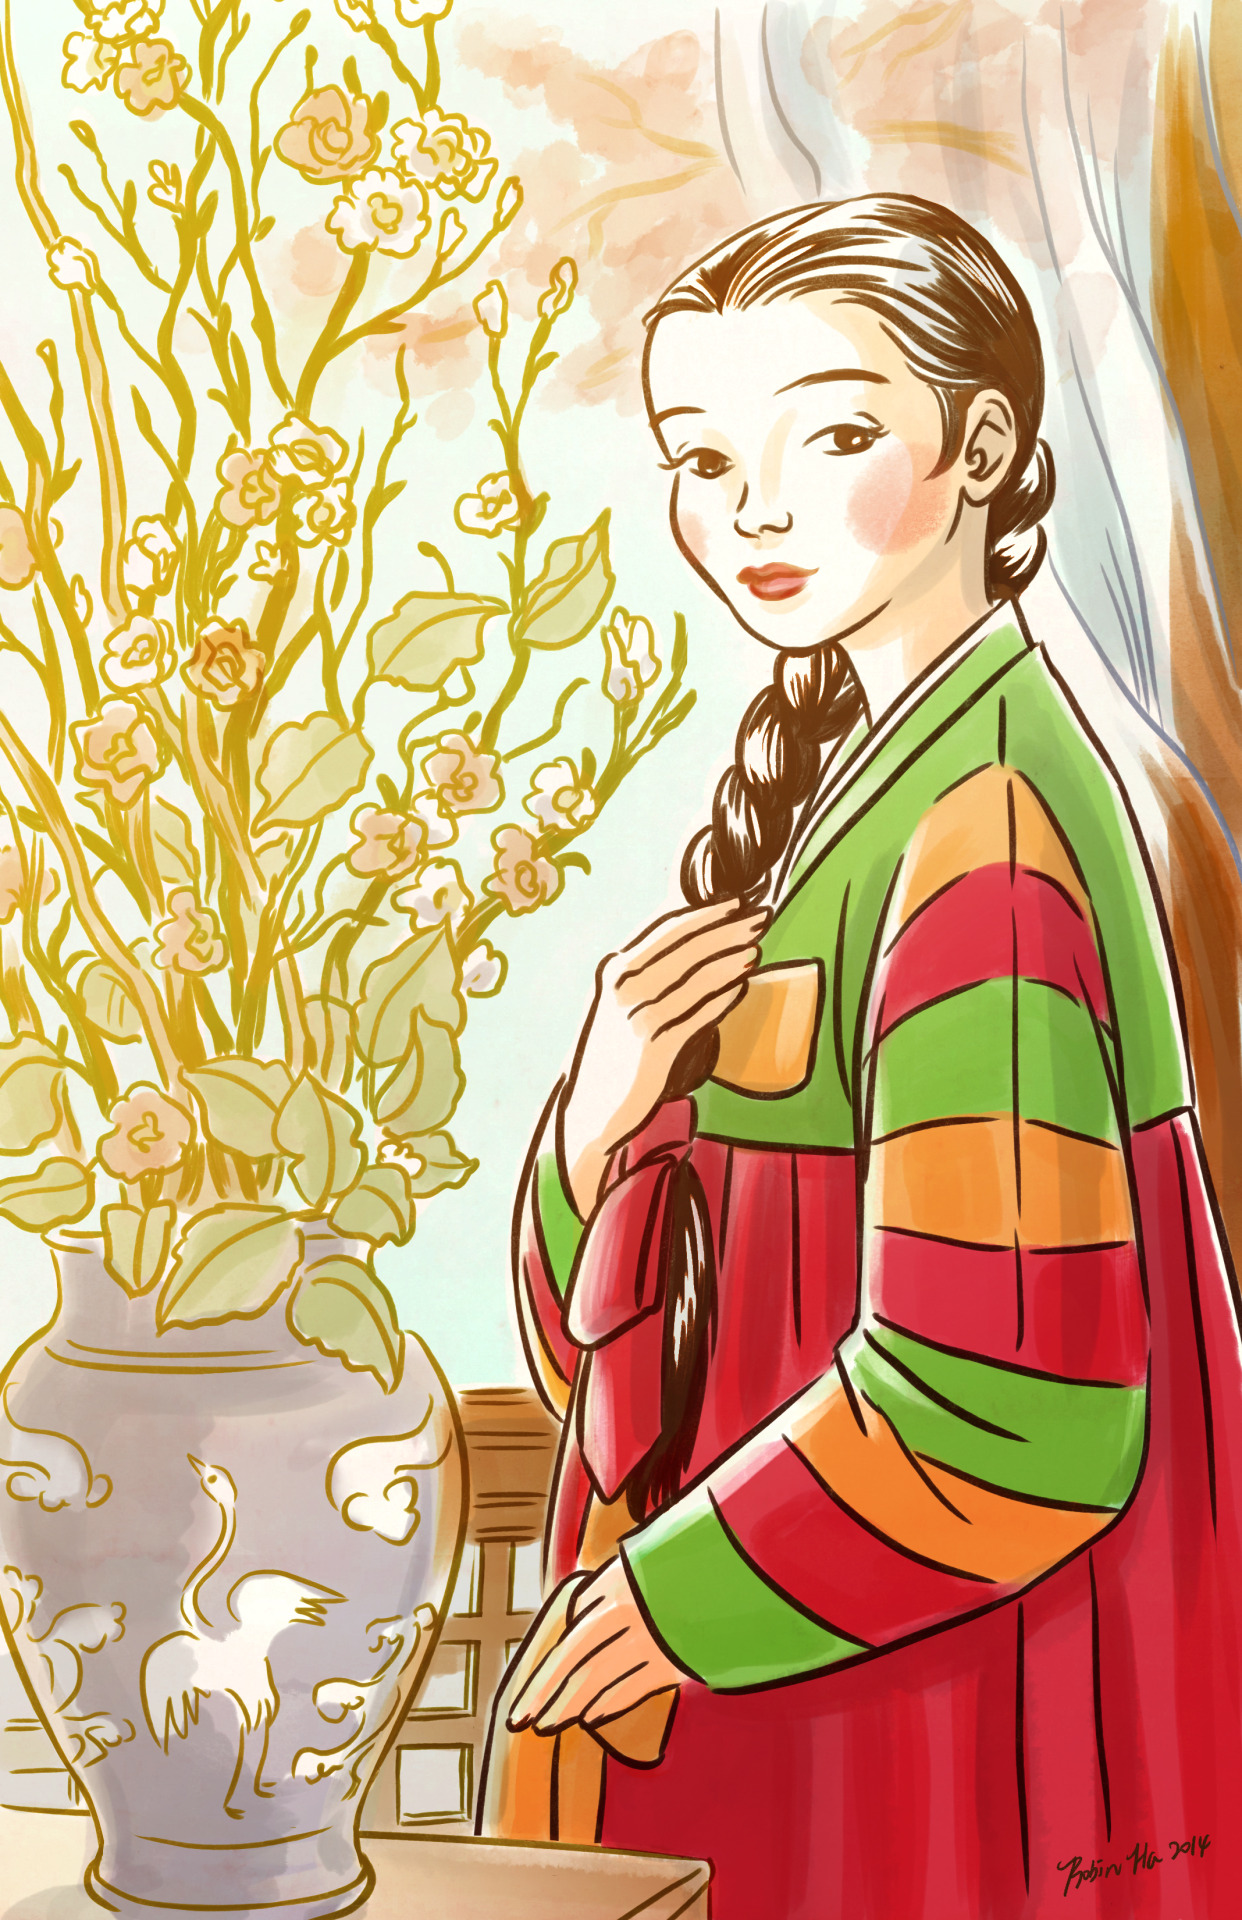 "banchancomic :     What is the Korean girl chef wearing in my comic? It's called Han-Bok, a traditional Korean dress. This particular top with striped sleeves is called ""Sek-Dong-Jeh-Go-Ri""  which is worn by girls on happy special occasions. The silk tie at the end of her braid is called ""Deng-Ki"".  It is worn by  young ladies yet to be married. This tie was the sign for the town's bachelors to know which girls were available. Once the ladies got married, they turned the braid into a bun and wore an ornate pin though the bun.    Han-Bok is such a beautiful costume. It makes the woman look so graceful but unfortunately it is so uncomfortable to wear. I have no idea  why they made the skirt to be tied so high, right on the breast line. Ouch!   It's hard to see anyone wearing Han-Bok in Korea anymore, except for the national holidays, weddings and funerals. I remember wearing them when I was a little girl visiting the elderly relatives in Korean new years and Chu-Suk, the Korean thanksgiving. I couldn't wait to take it off because it was so itchy and uncomfortable. The only way for this dress to stay put was to tie it very tightly right underneath my armpit and I could hardly breath, let alone eating any of those wonderful Korean holiday food.   There are many Korea dramas based on the Cho-Sun (Korean dynasty 1300s- 1800s) period and all the characters wear such a beautiful ornate Han-Bok. I'm a total sucker for those dramas. I've recently heard about this K drama called ""Dae-Jang-Kum"" which is about a female chef in the Cho-Sun era palace. It's been translated as ""The Jewel in the palace"" in the other Asian countries and apparently it was a hugh hit a few years ago. I don't watch much K dramas these days so I was completely oblivious to it until one of my Korean teacher told me to watch it since I'm doing a comic about Korean food. Korean Food drama full of beautiful Han-bok clad characters?? I was sold instantly and  ordered the entire set online, I can't wait to watch it!         Robin Ha's new comic is beautiful.  Also, delicious!"